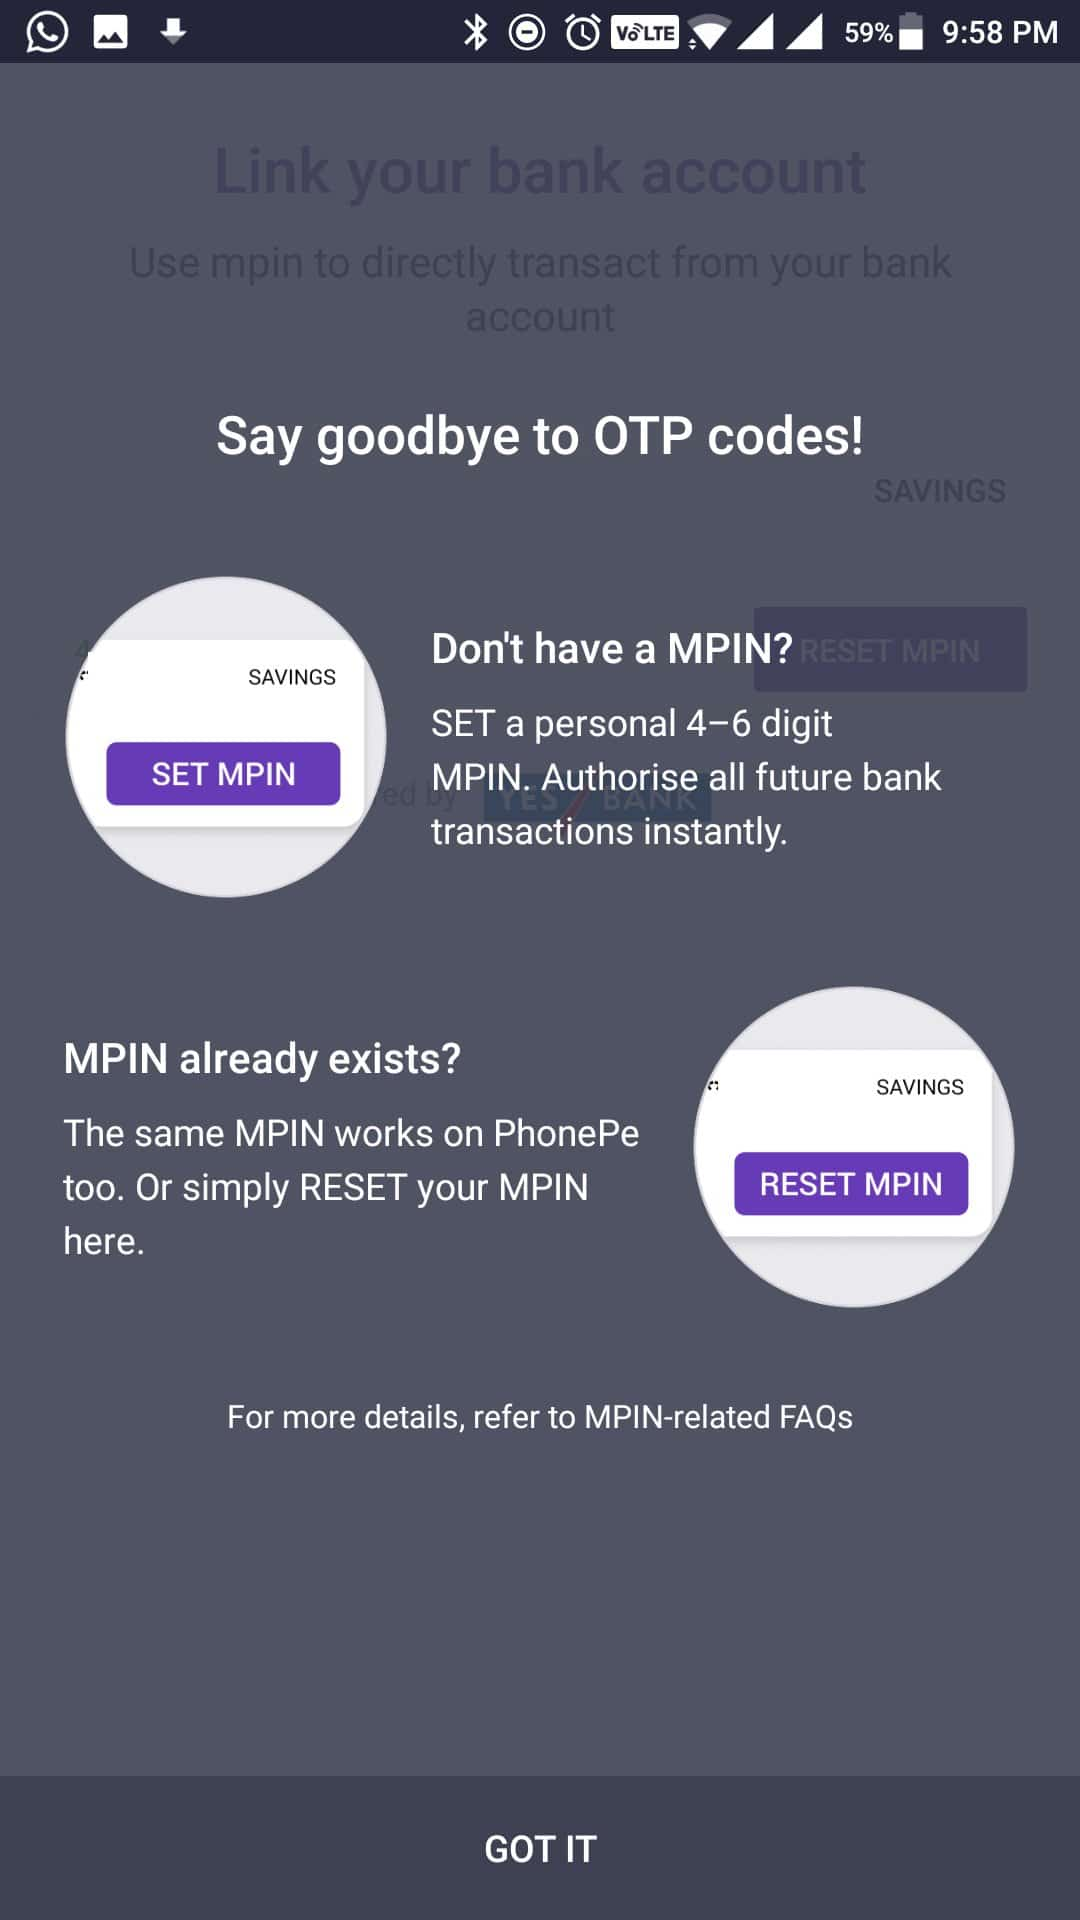 PhonePe - Set Mpin for your bank